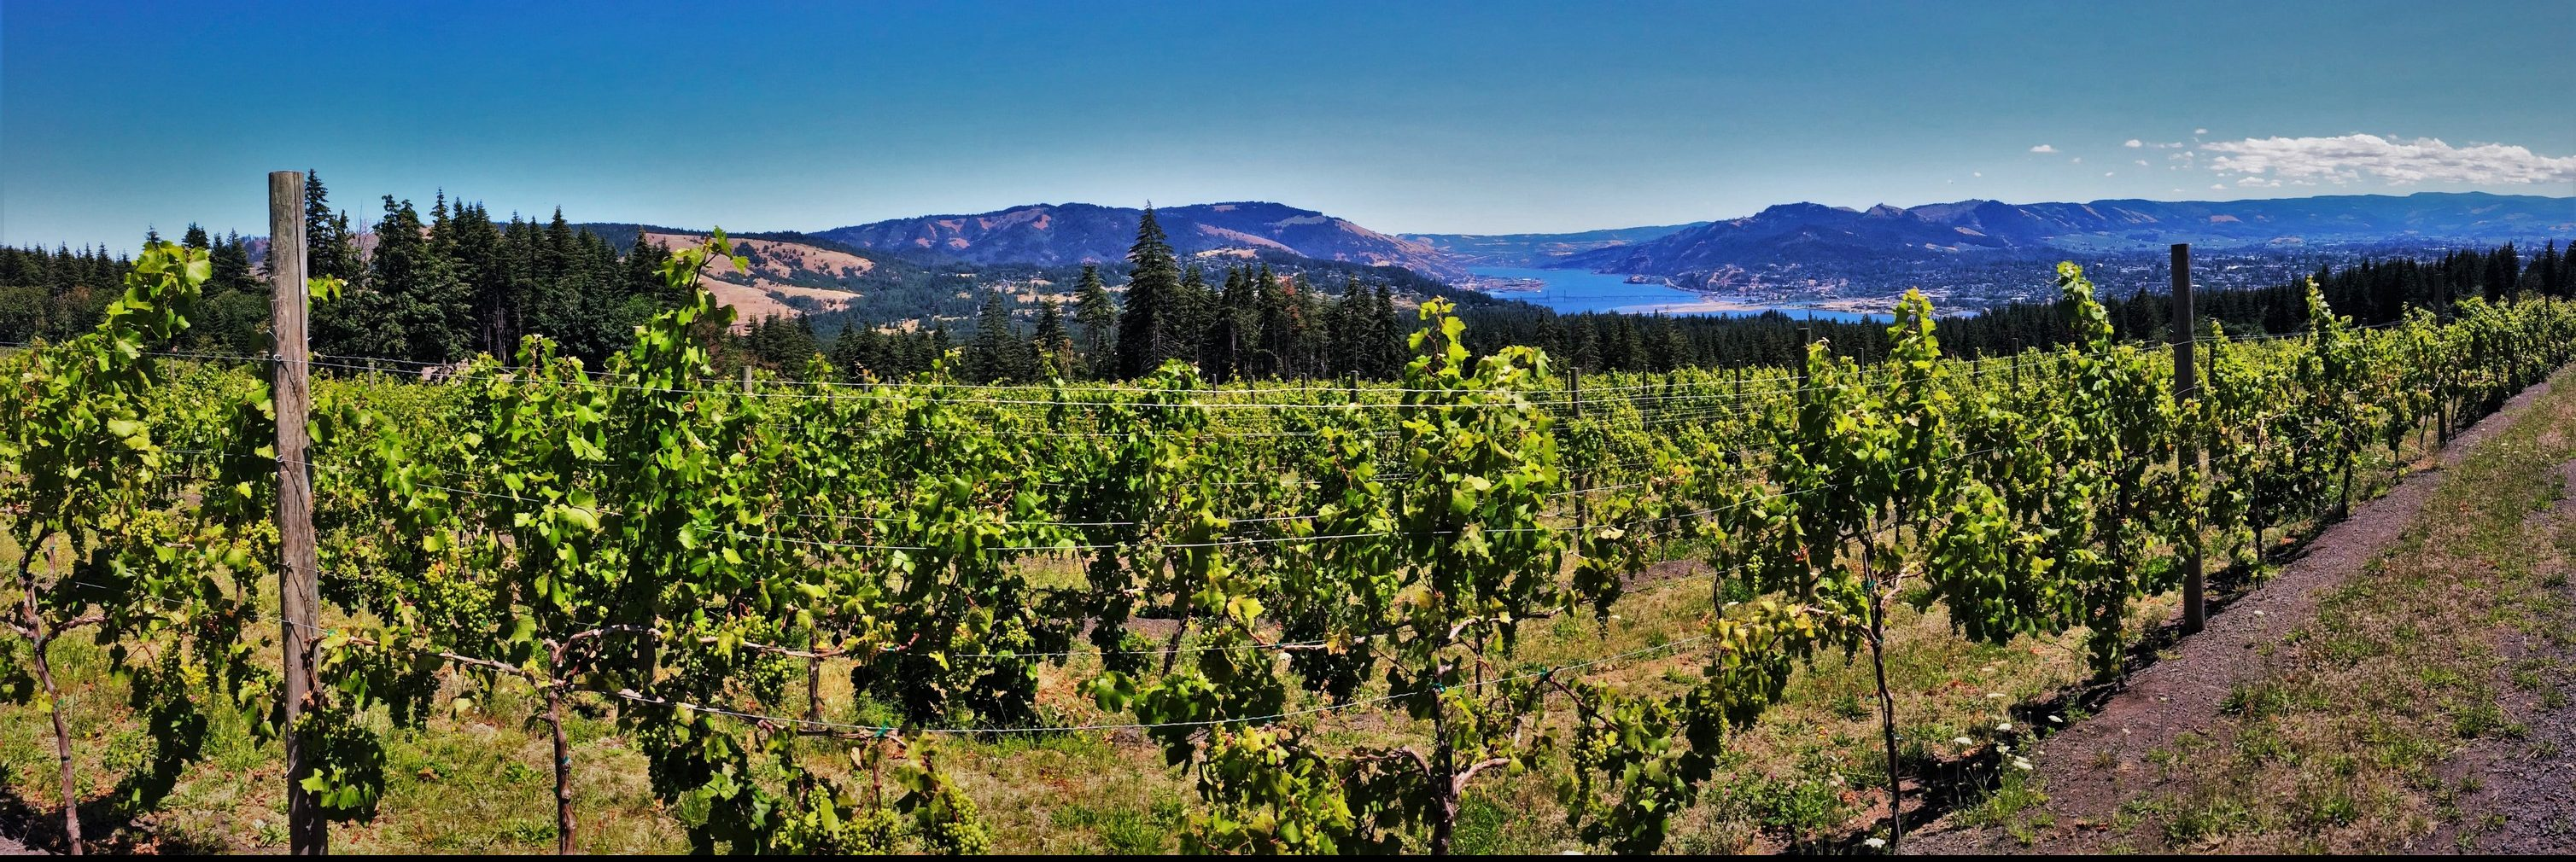 Columbia River Gorge Vineyard with Hood River beyond pano 1